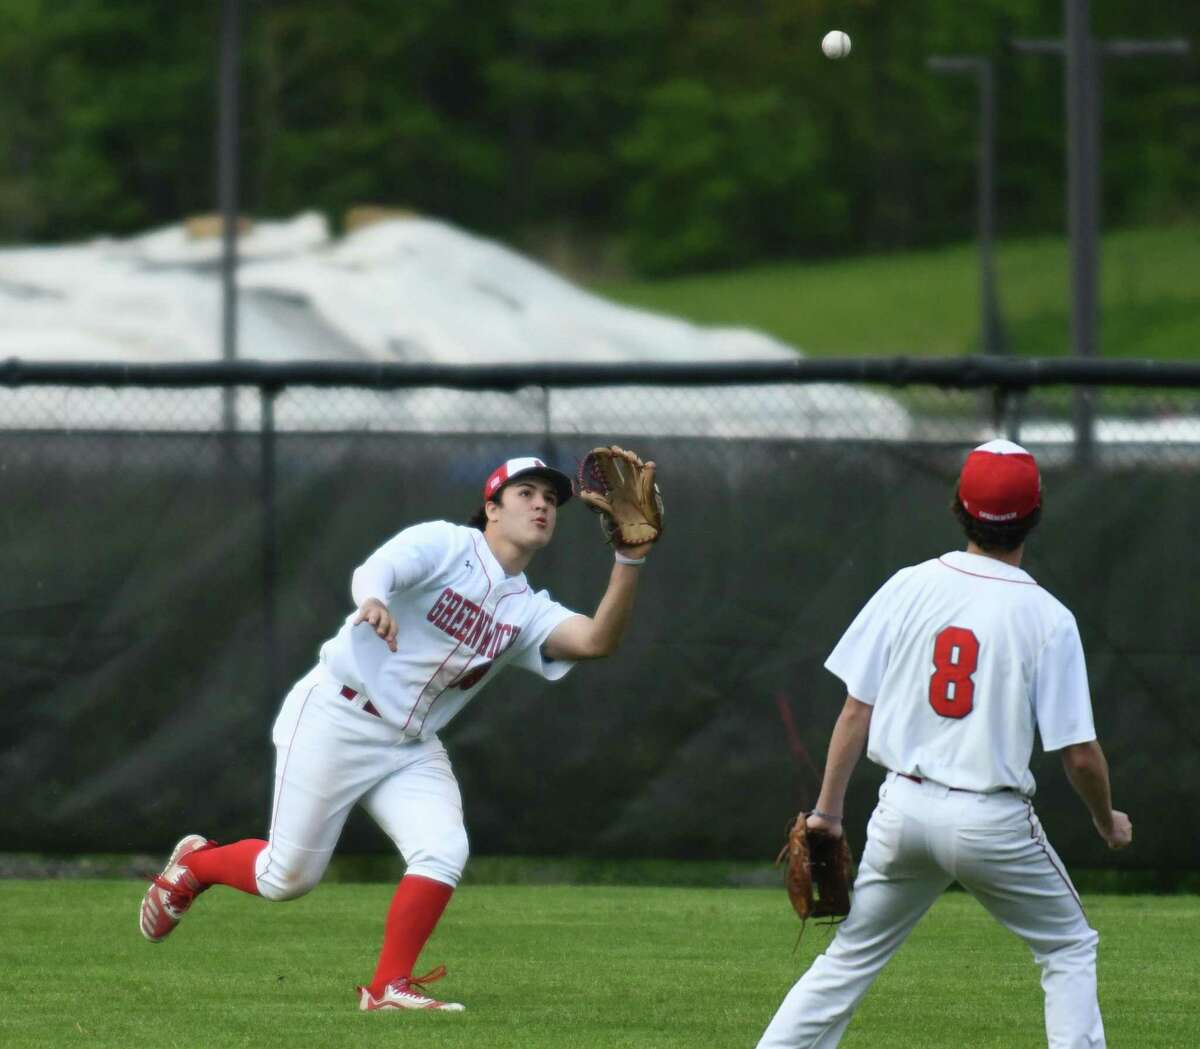 Greenwich right fielder Ryan Perez makes a catch in the high school baseball game between Greenwich and Trumbull at Greenwich High School in Greenwich, Conn. Tuesday, May 11, 2021.